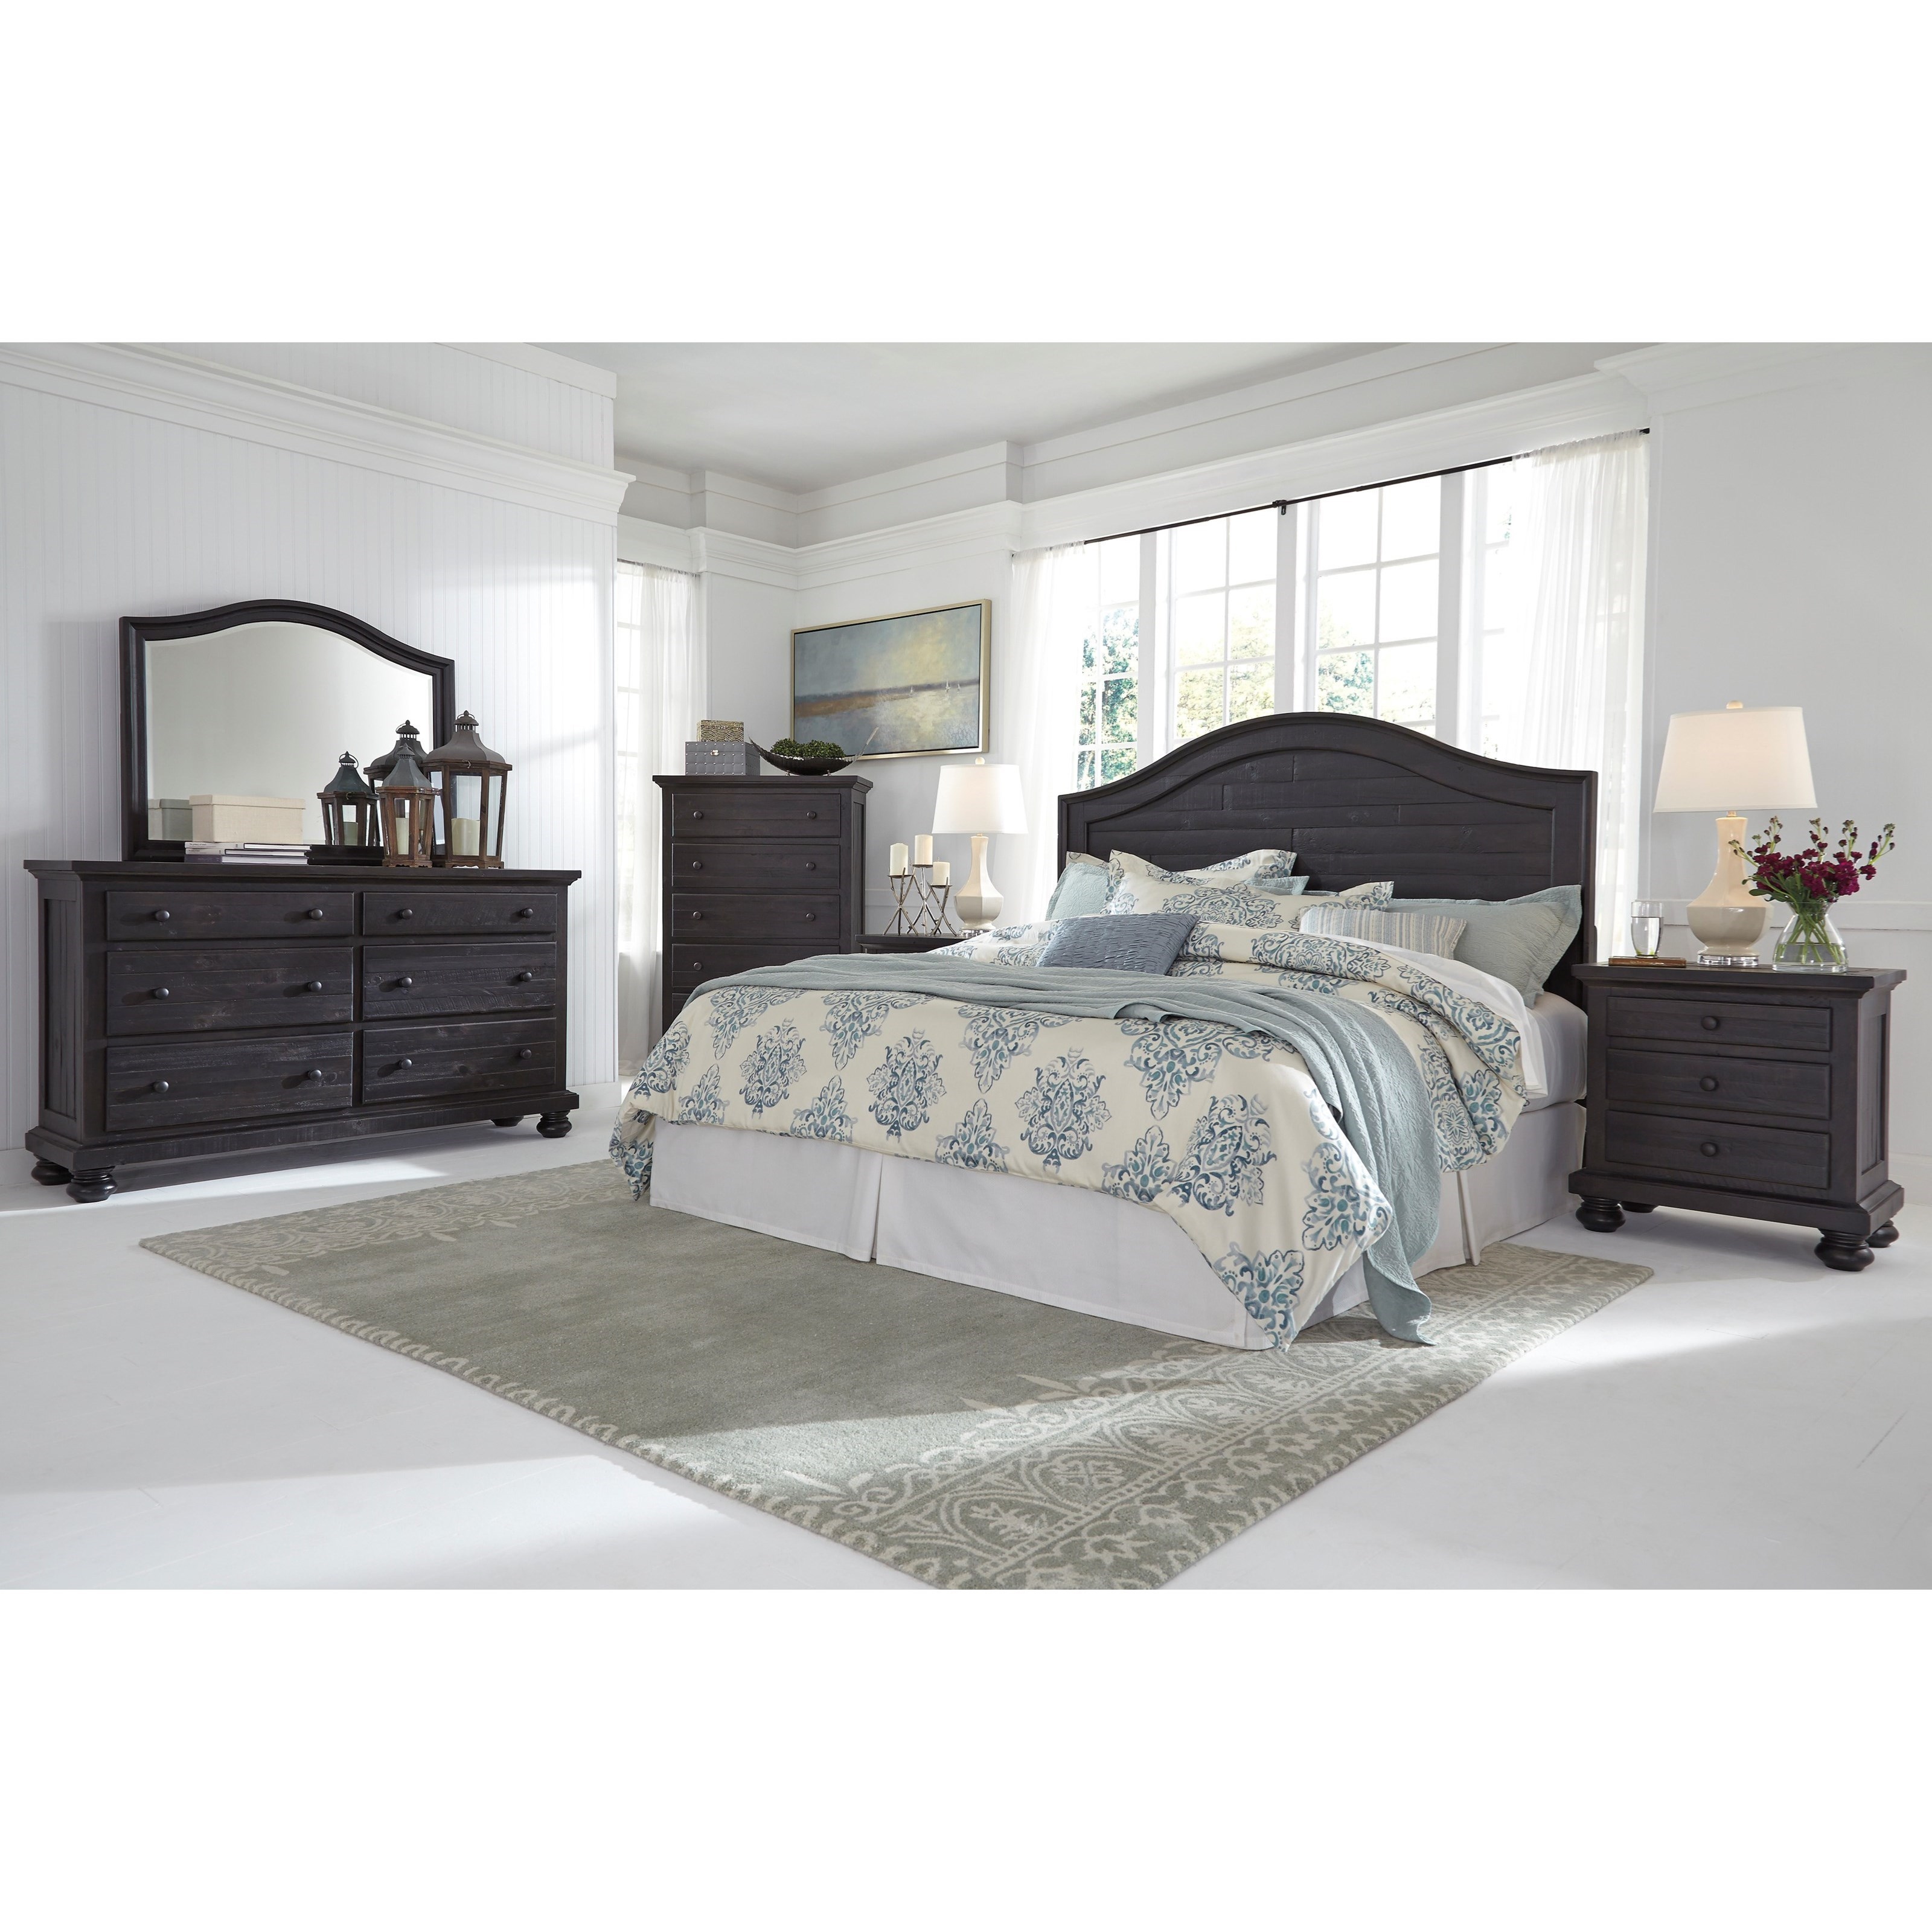 Signature Design by Ashley Sharlowe King/California King Bedroom Group - Item Number: B635 K Bedroom Group 1